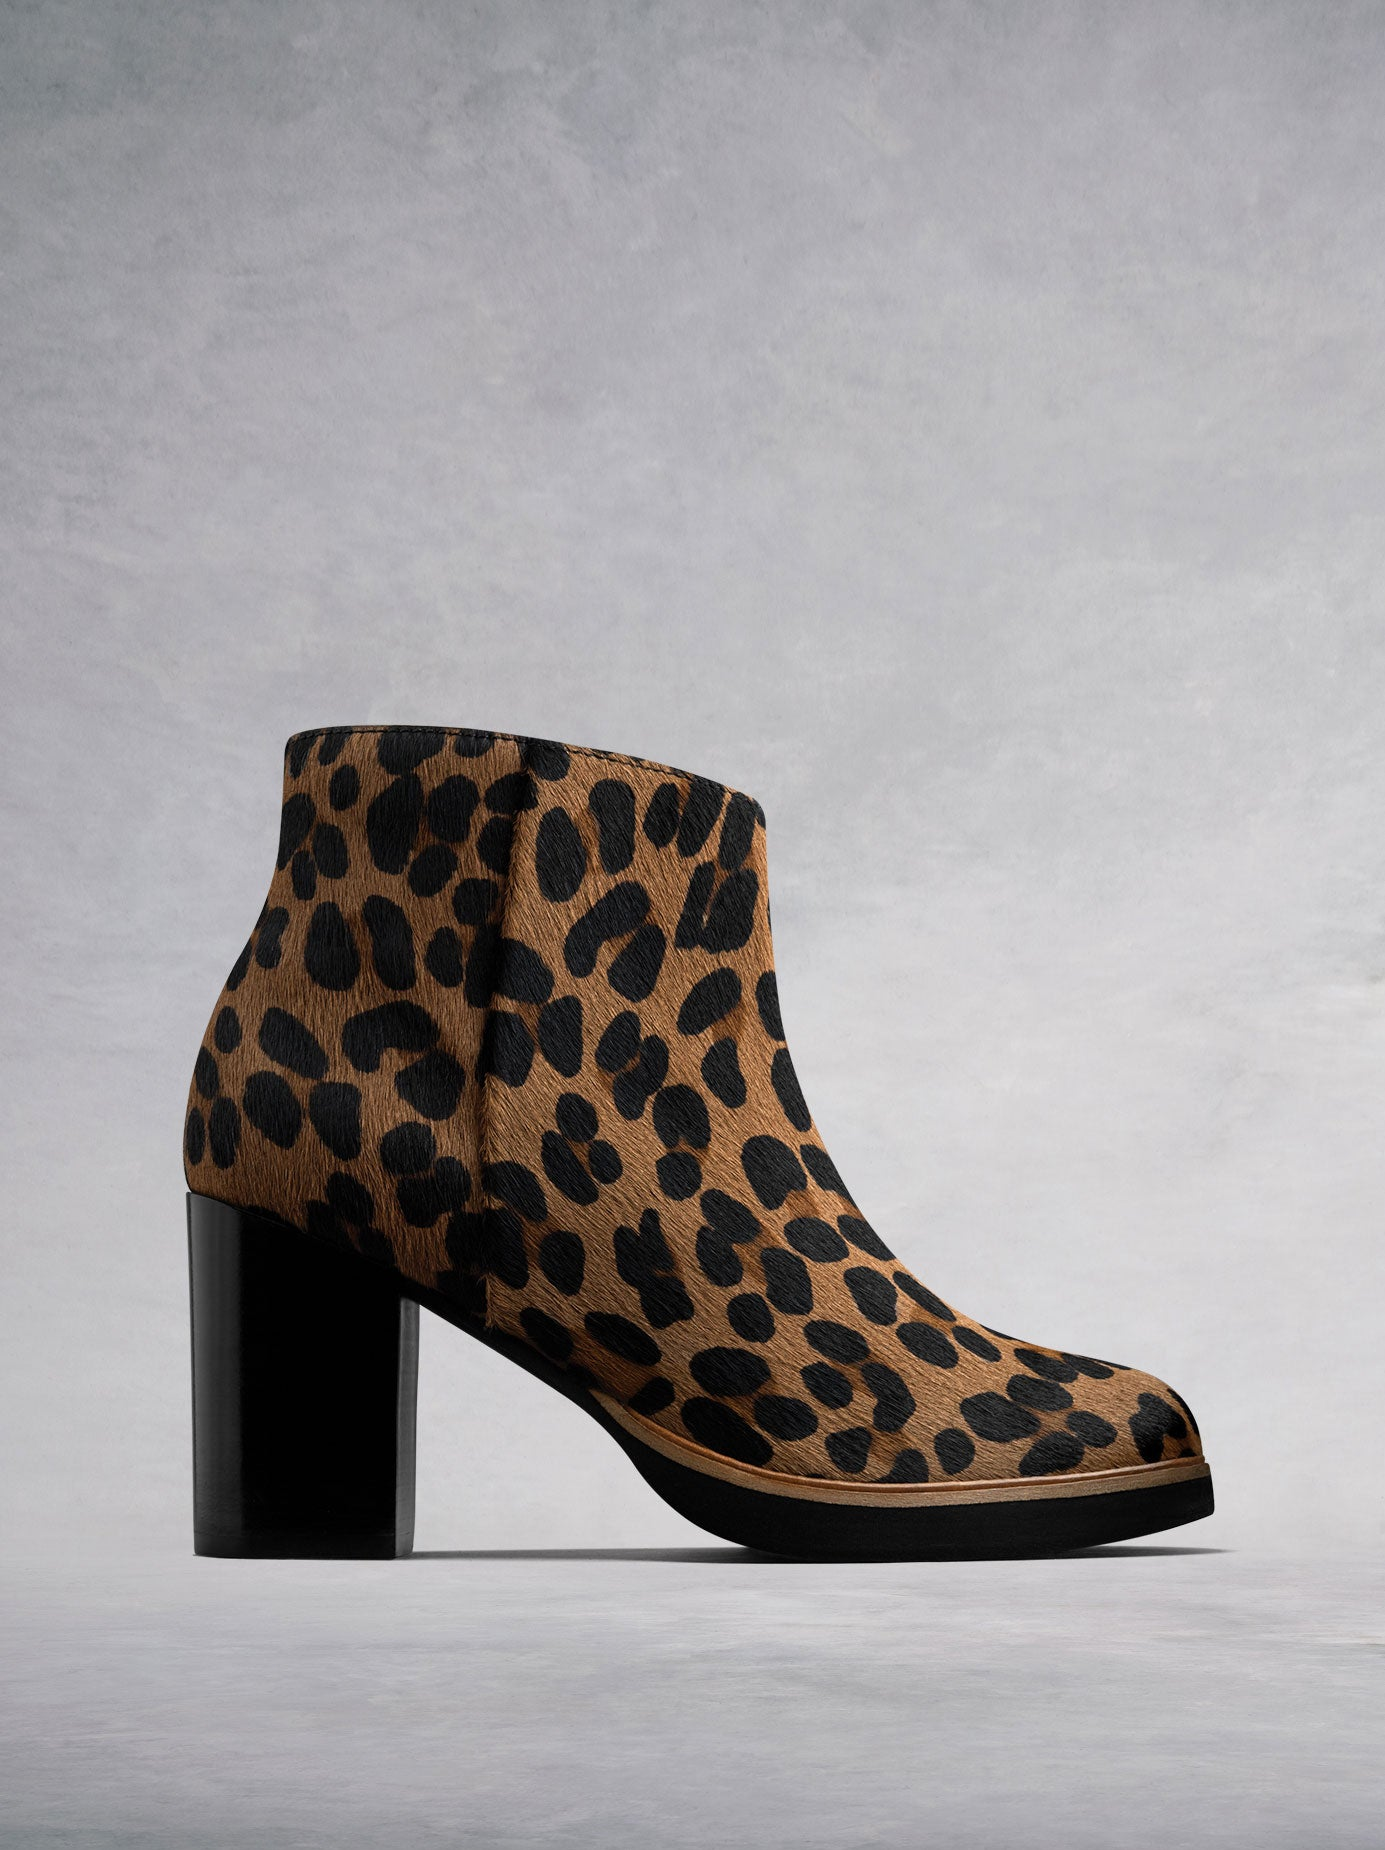 The Ryton - a statement leopard hair leather high heeled ankle boot.